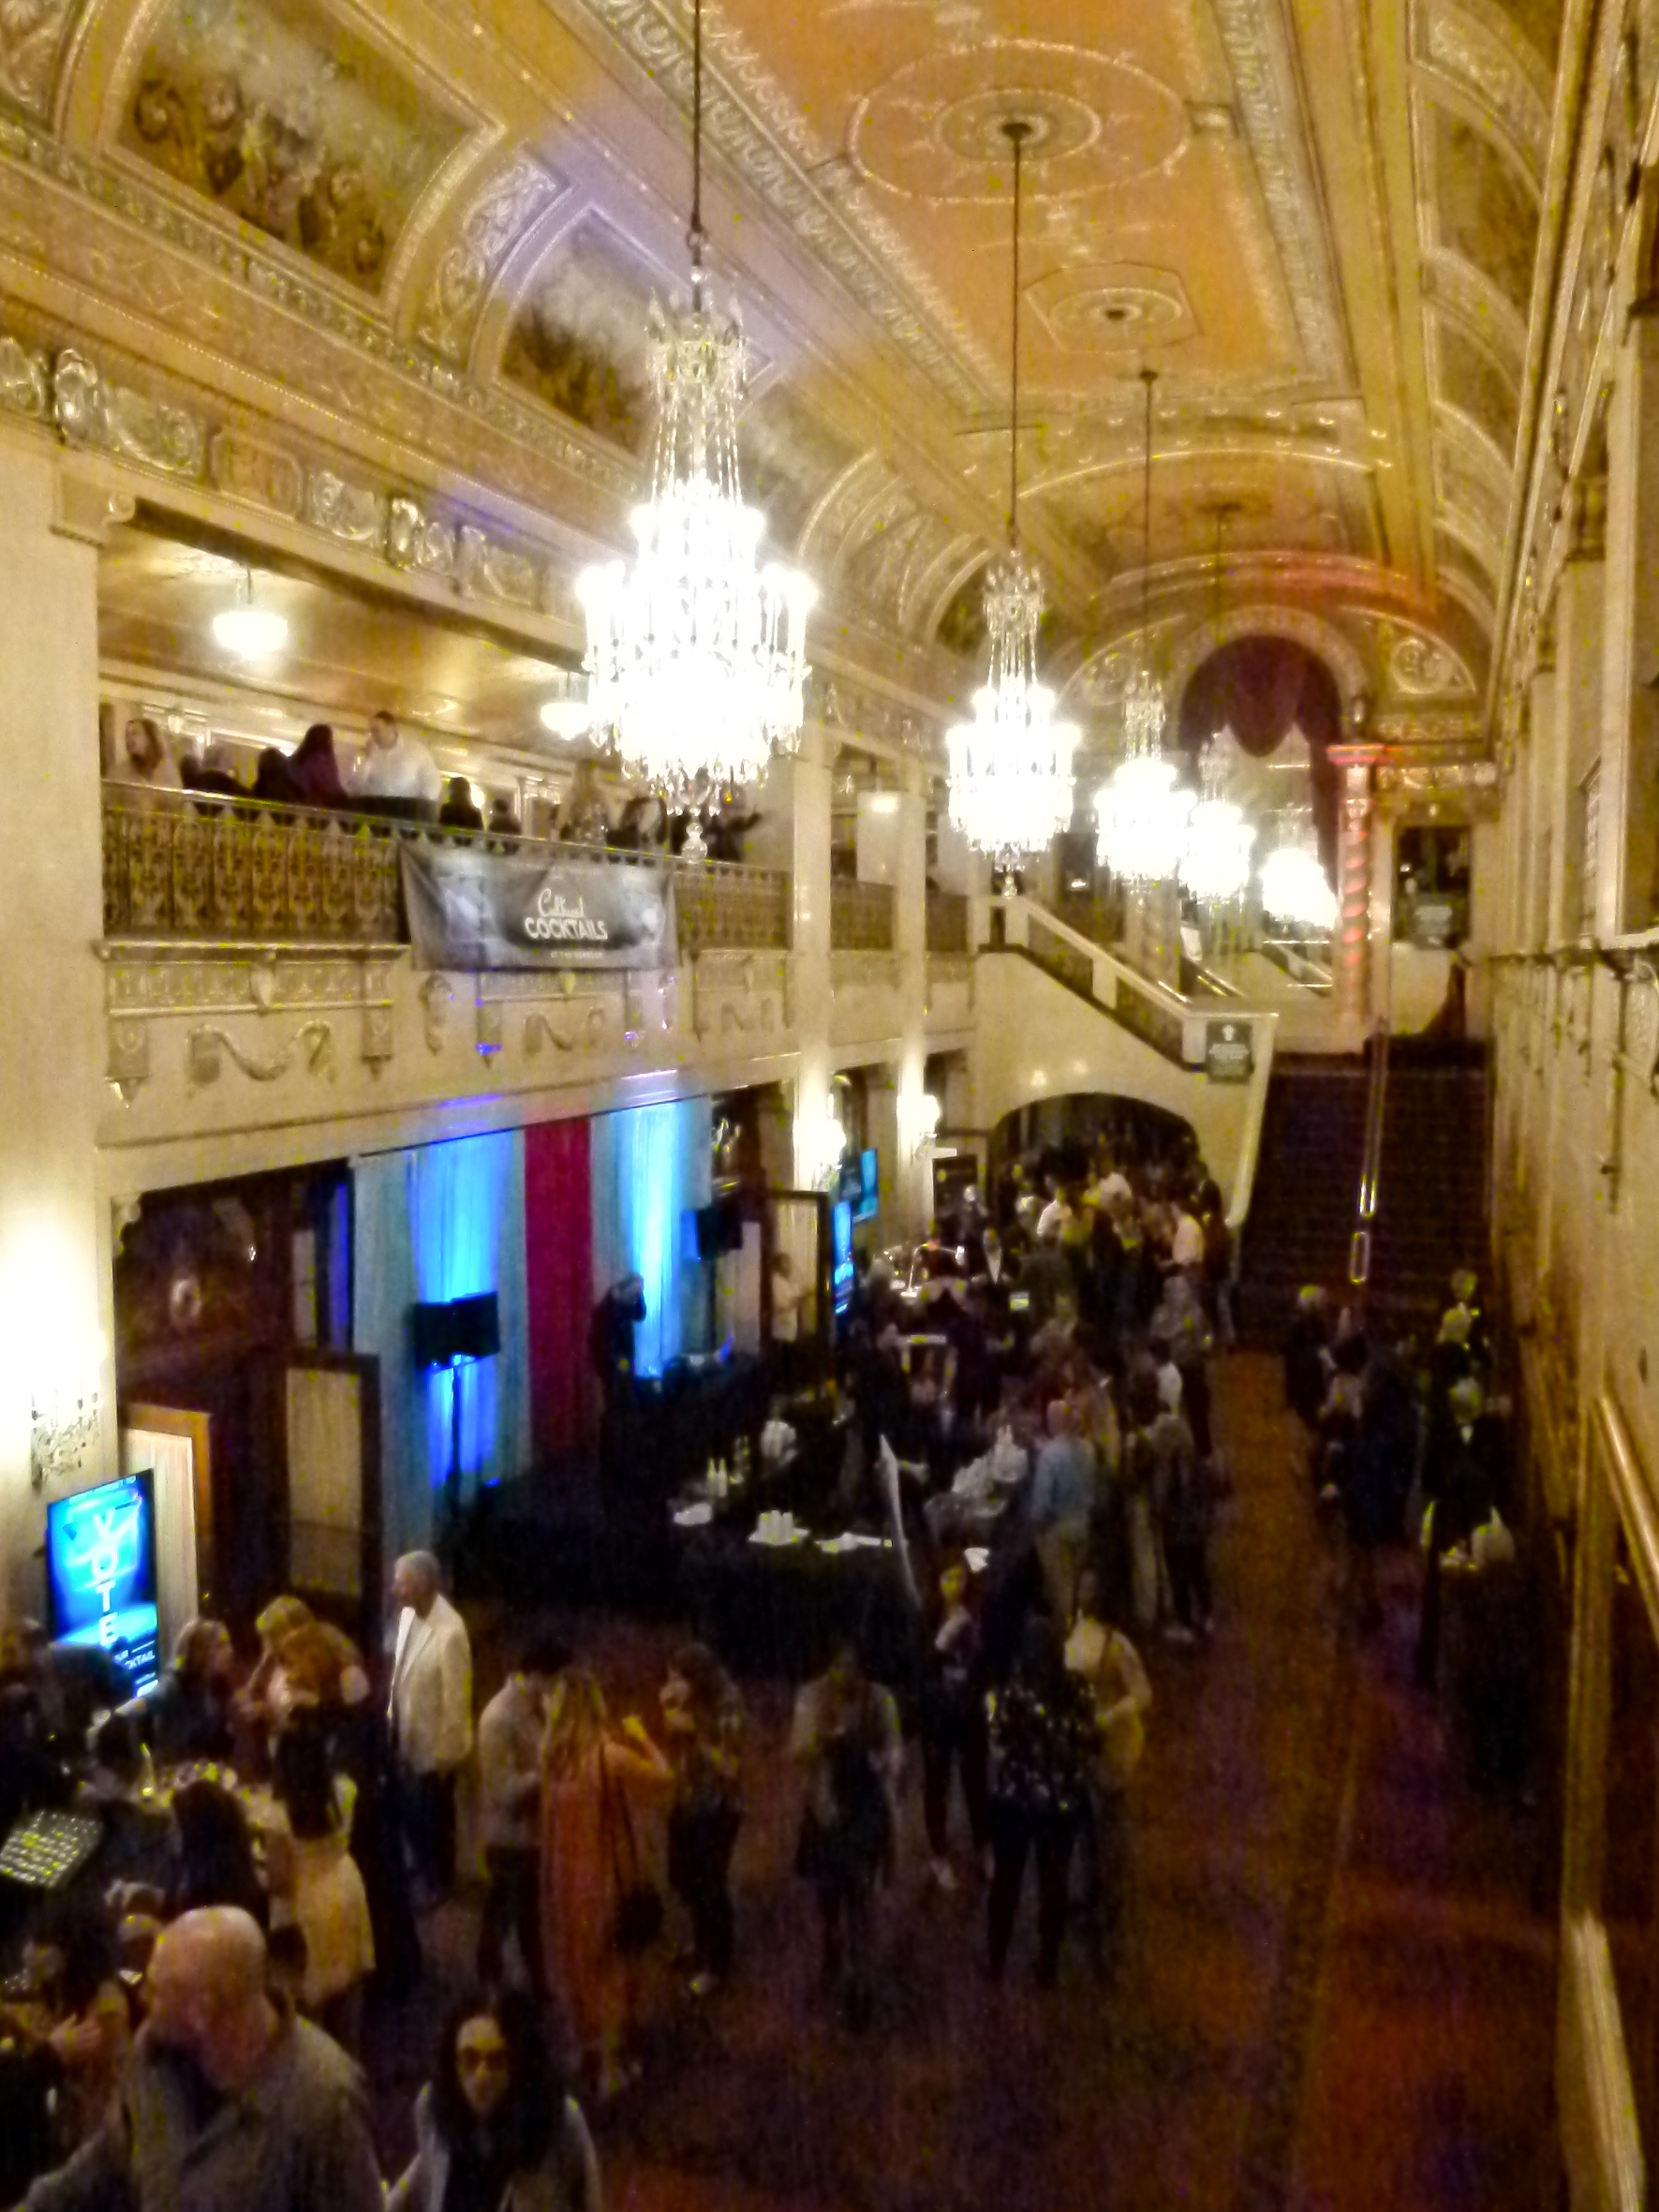 The spectacular grand foyer of Benedum Center and its balcony promenades was the location for Cultured Cocktails.